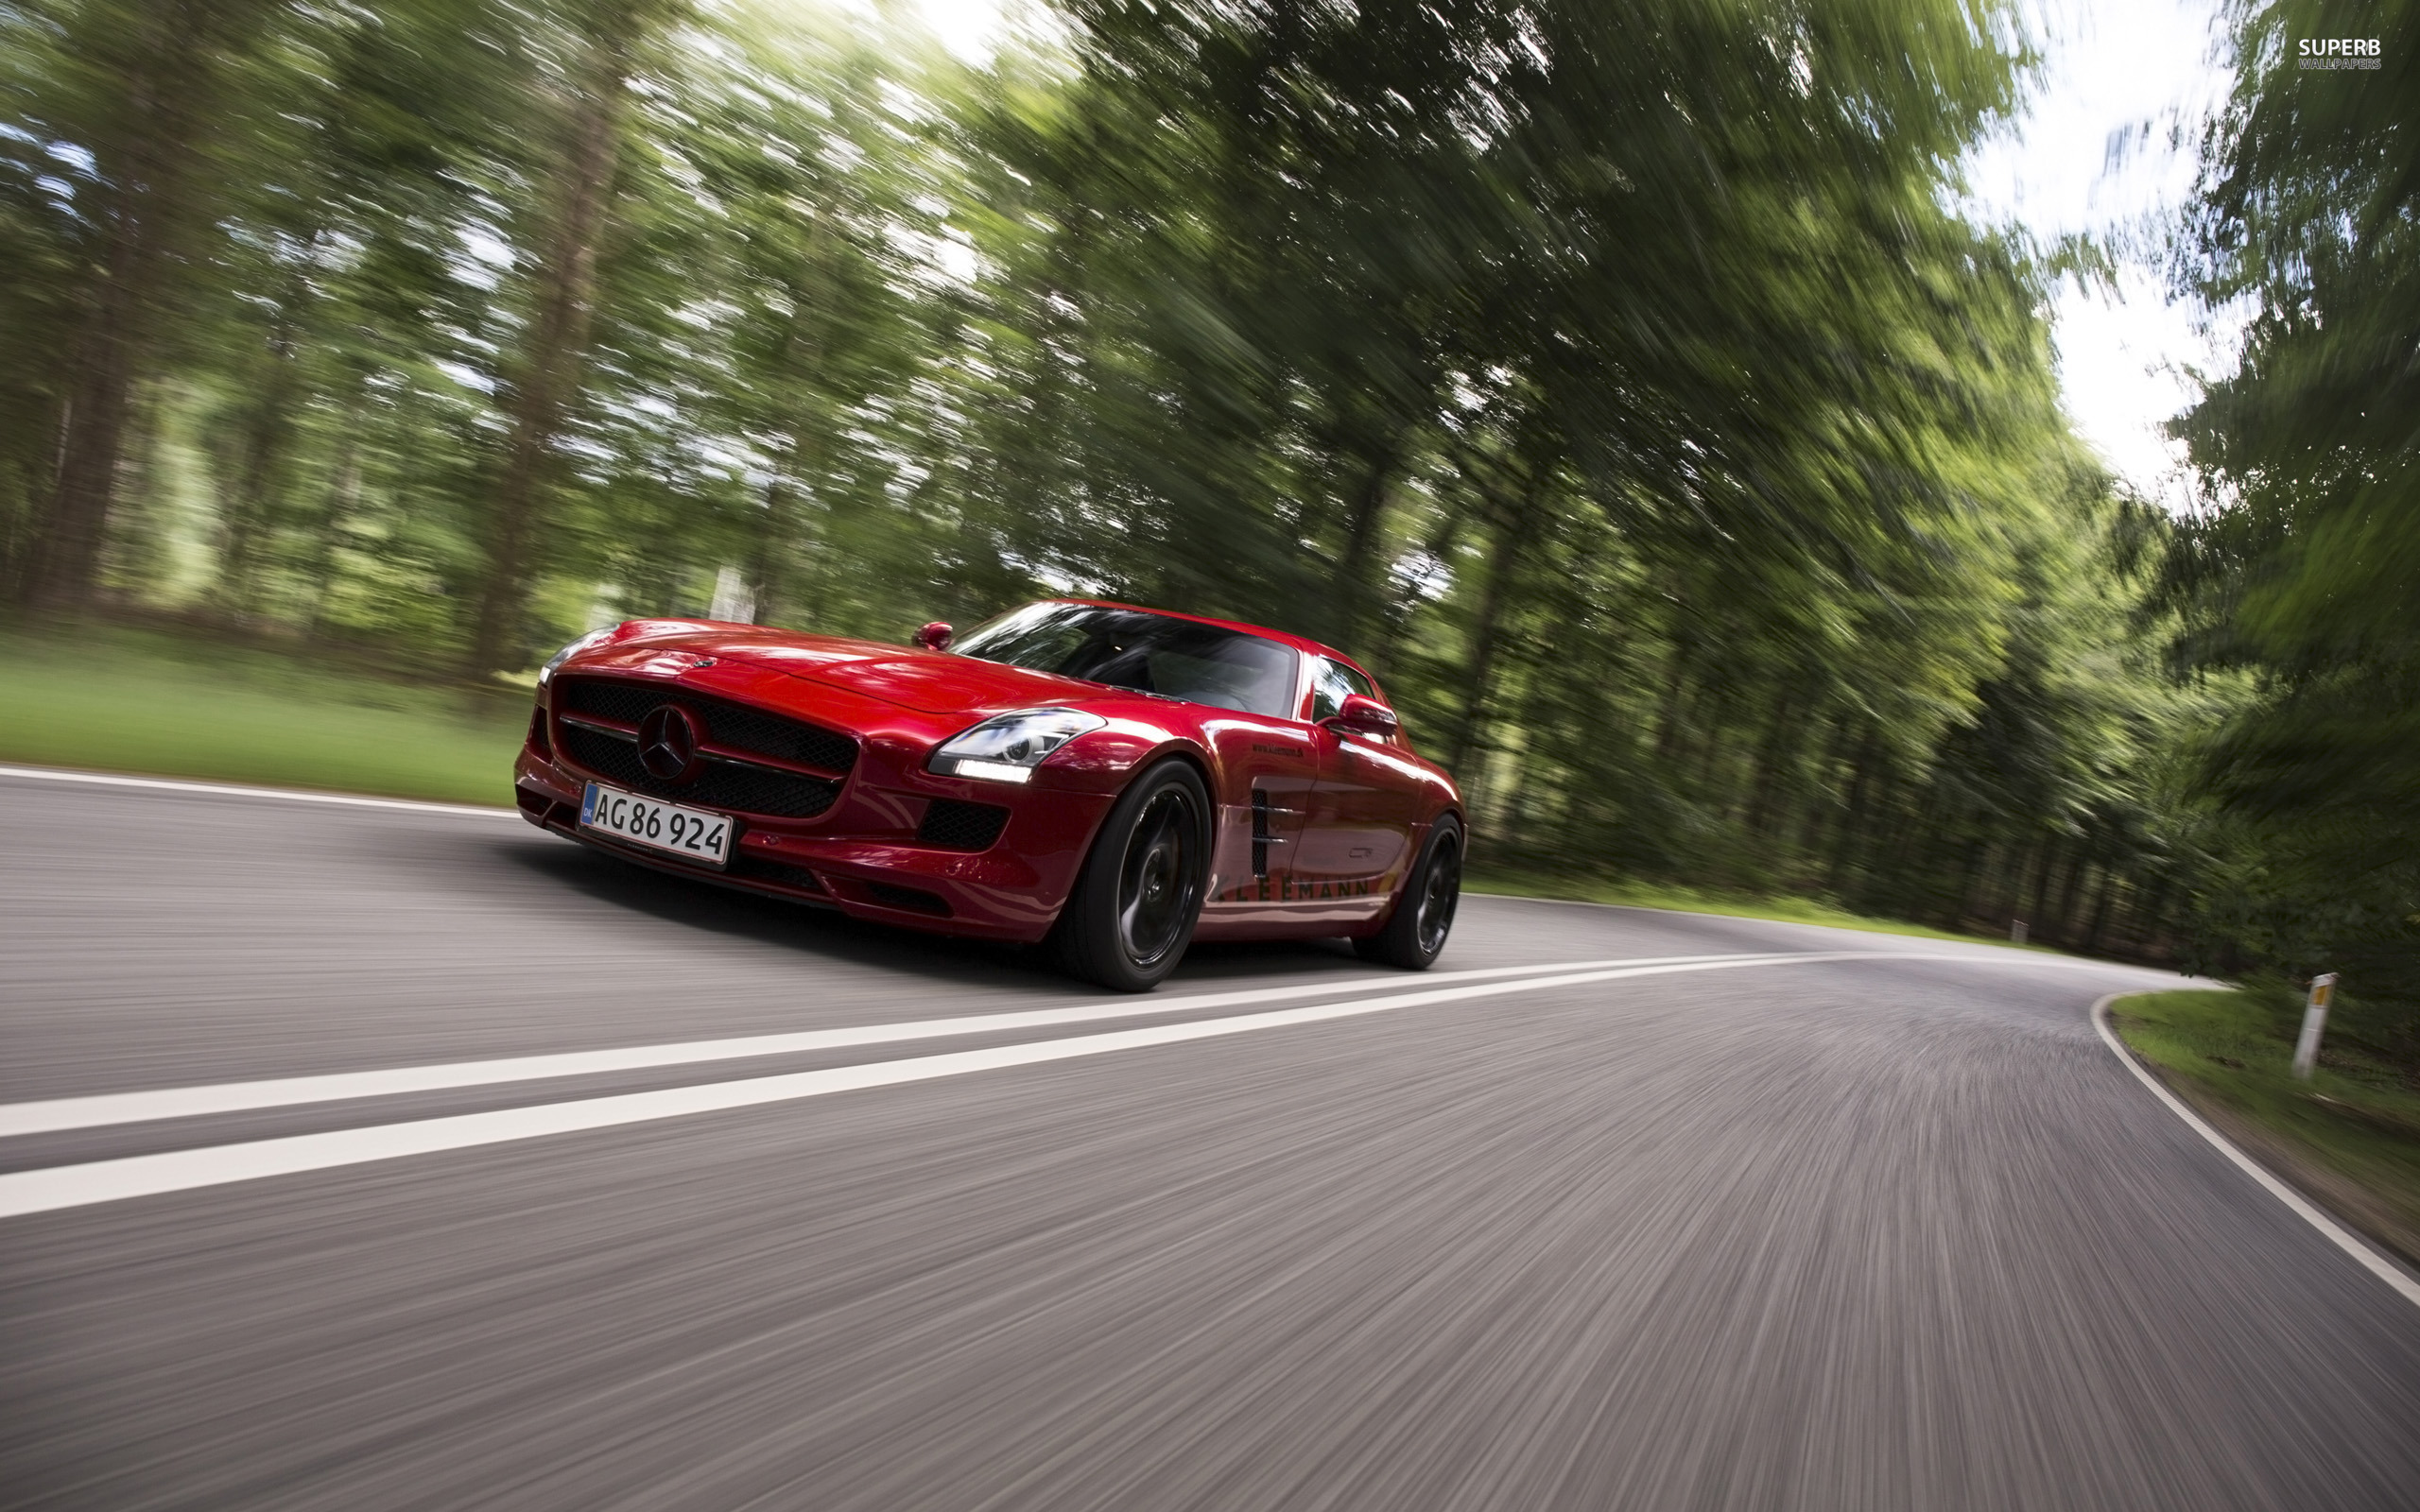 Superb Wallpapers Hd Mercedes Benz Sls Amg Wallpapers Pictures Images